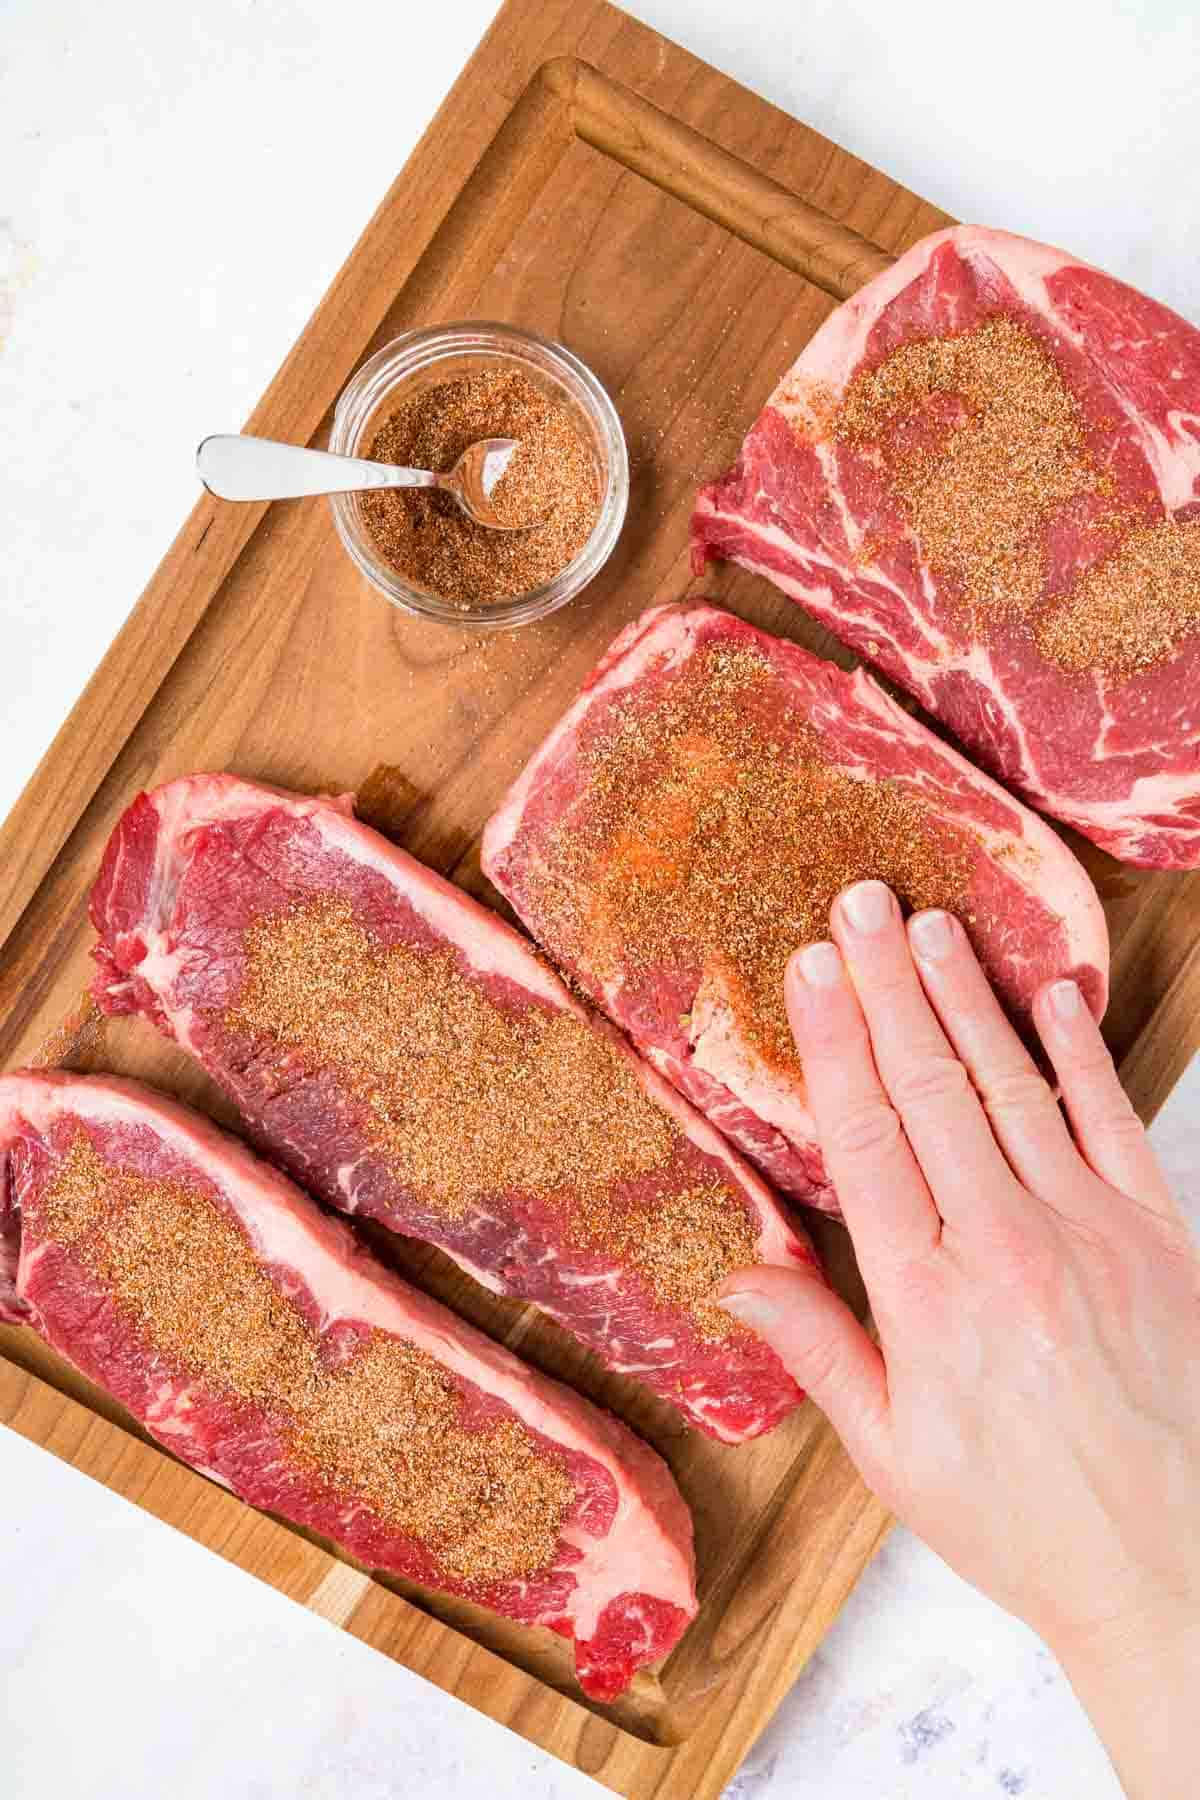 A Hand Rubbing the Spice Rub Onto Four Steaks on a Wooden Cutting Board